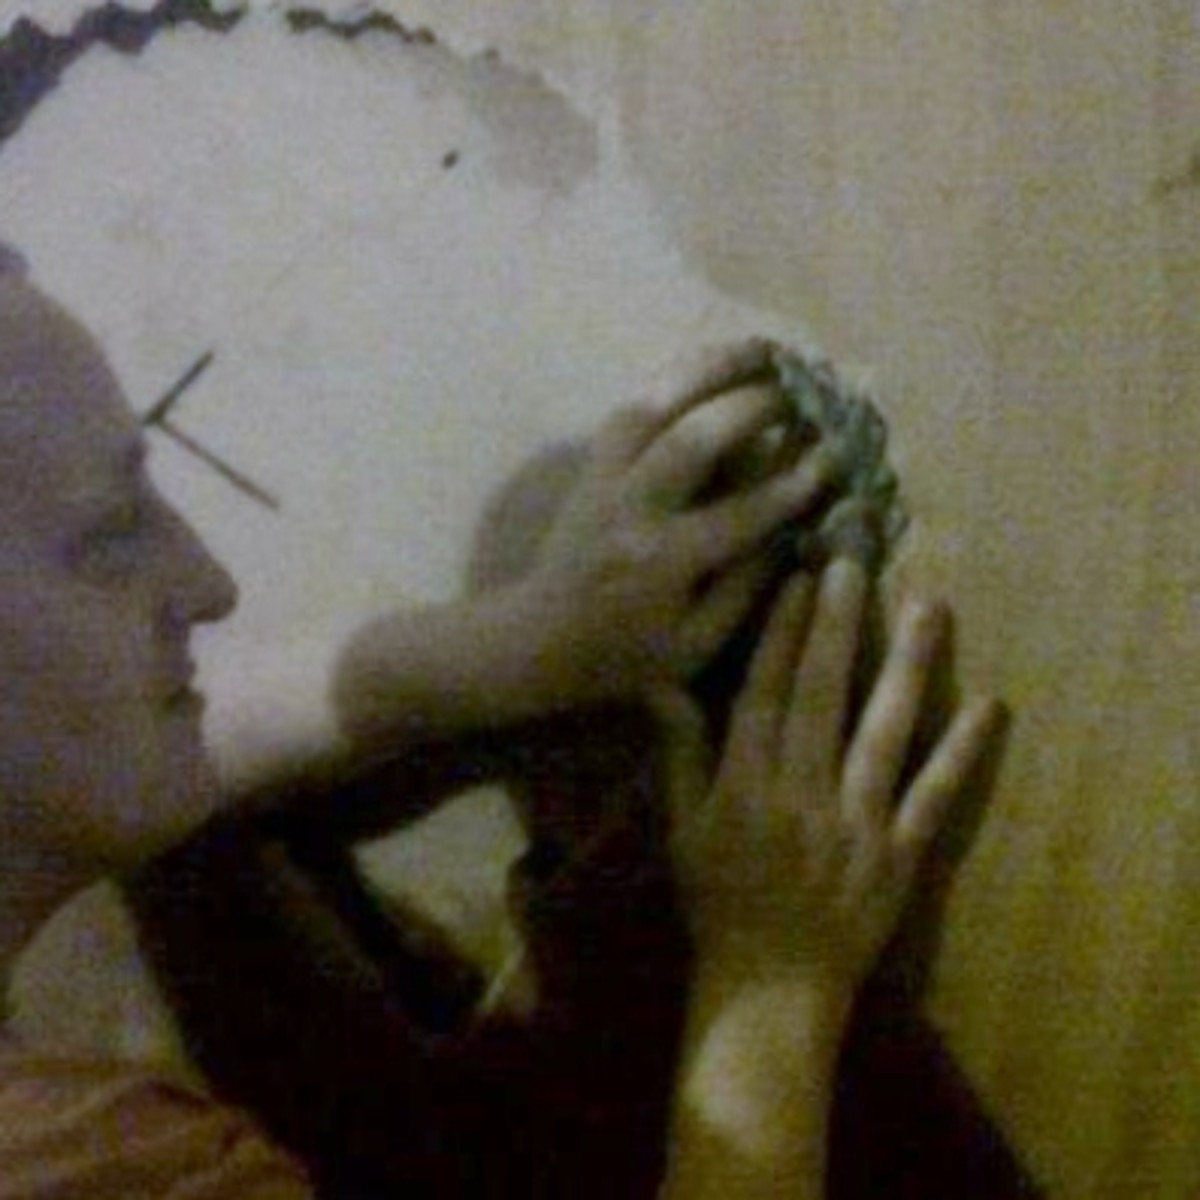 Me filling the hole with crumpled newspaper soaked in wallpaper paste.